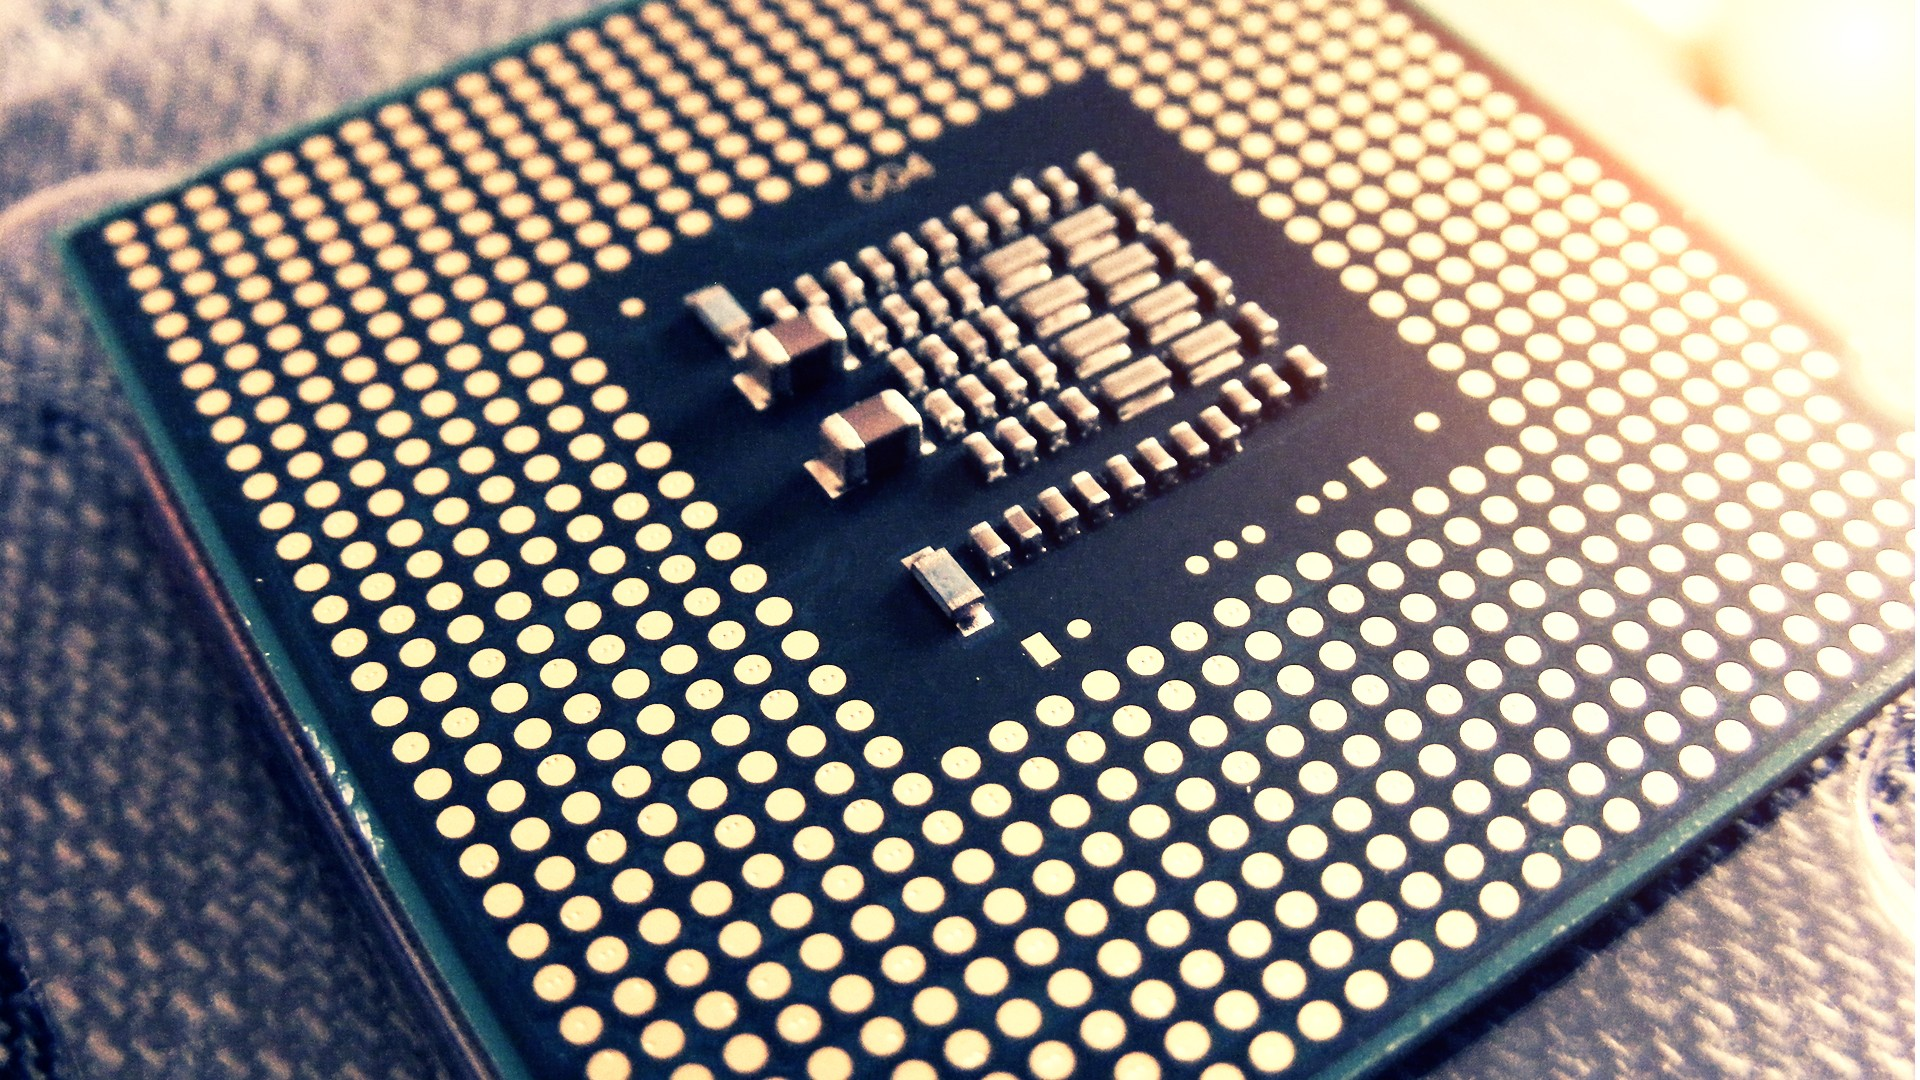 Chip Intel CPU wallpaper 1920x1080 212817 WallpaperUP 1920x1080